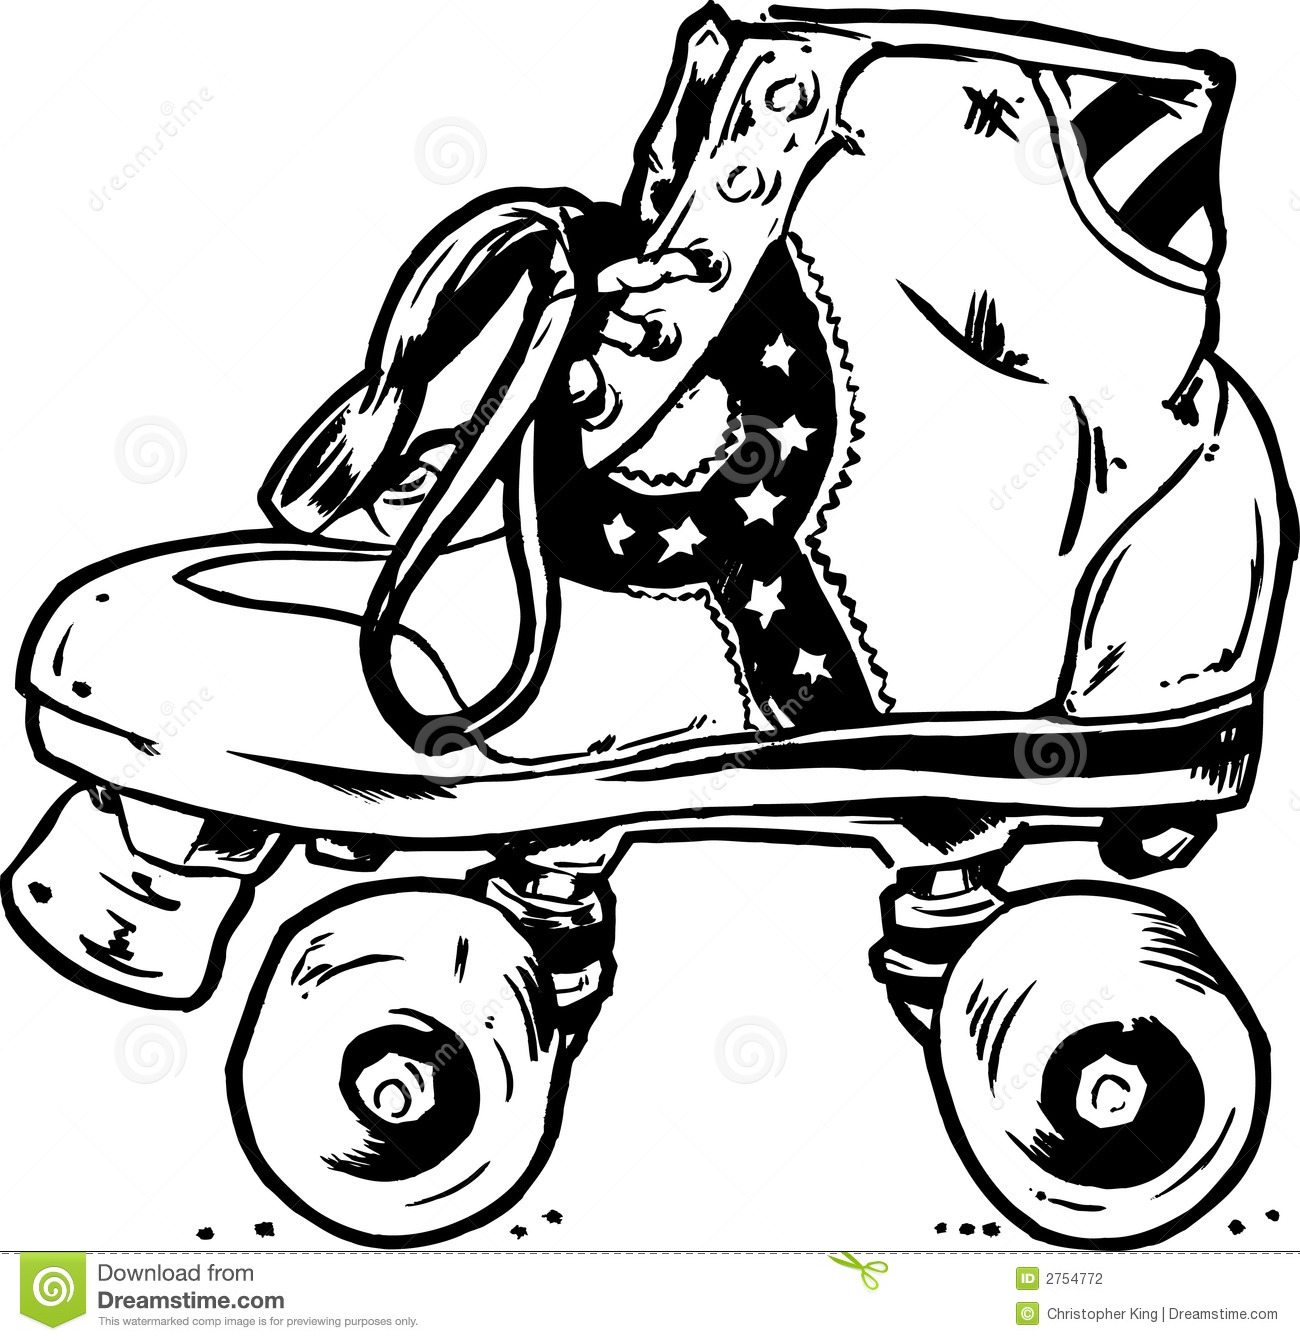 Lightning Mcqueen Clipart Black And White likewise I0000DLG9zqzU12c besides Safety rules on road clipart additionally Cars 5th Birthday Party likewise Coloringfree blogspot co. on yellow race car clip art